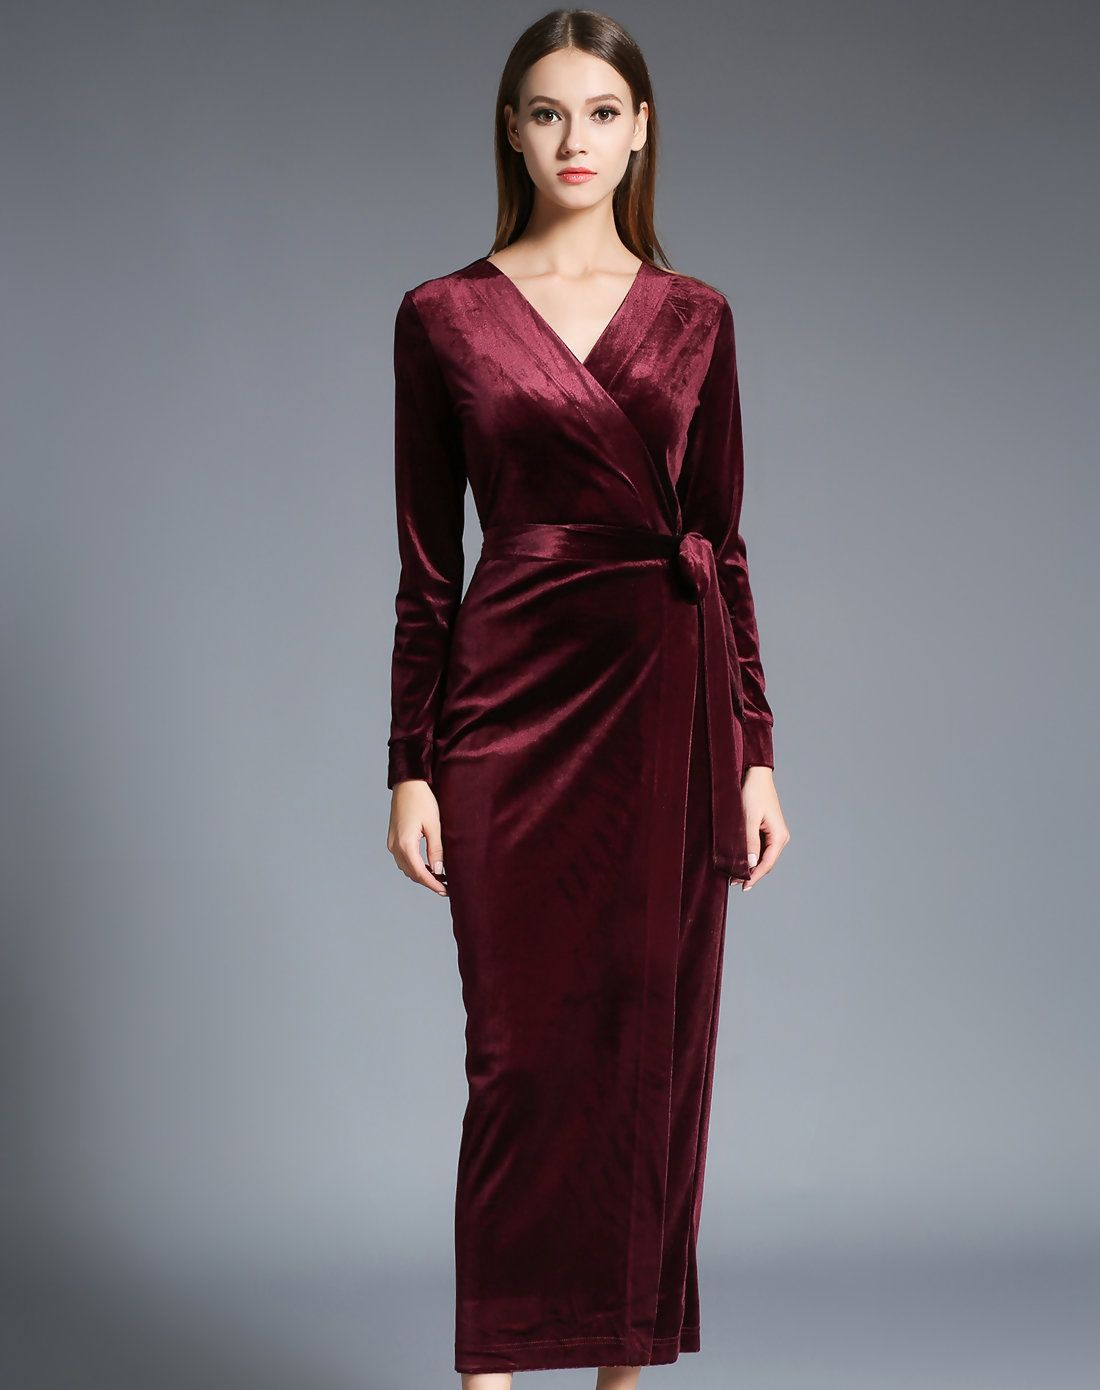 Adorewe fwaysby wine surplice neck long sleeve belted midi dress